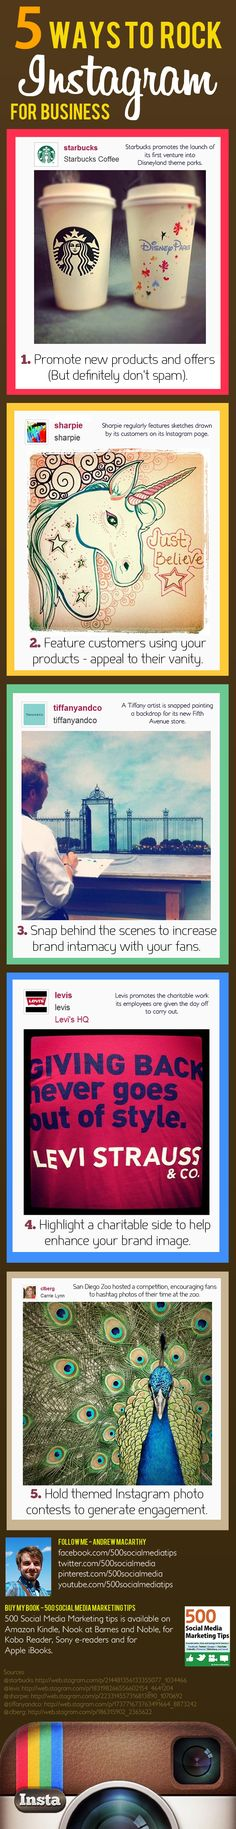 Use Instagram for Businesses1 How to Use Instagram for Businesses and Companies